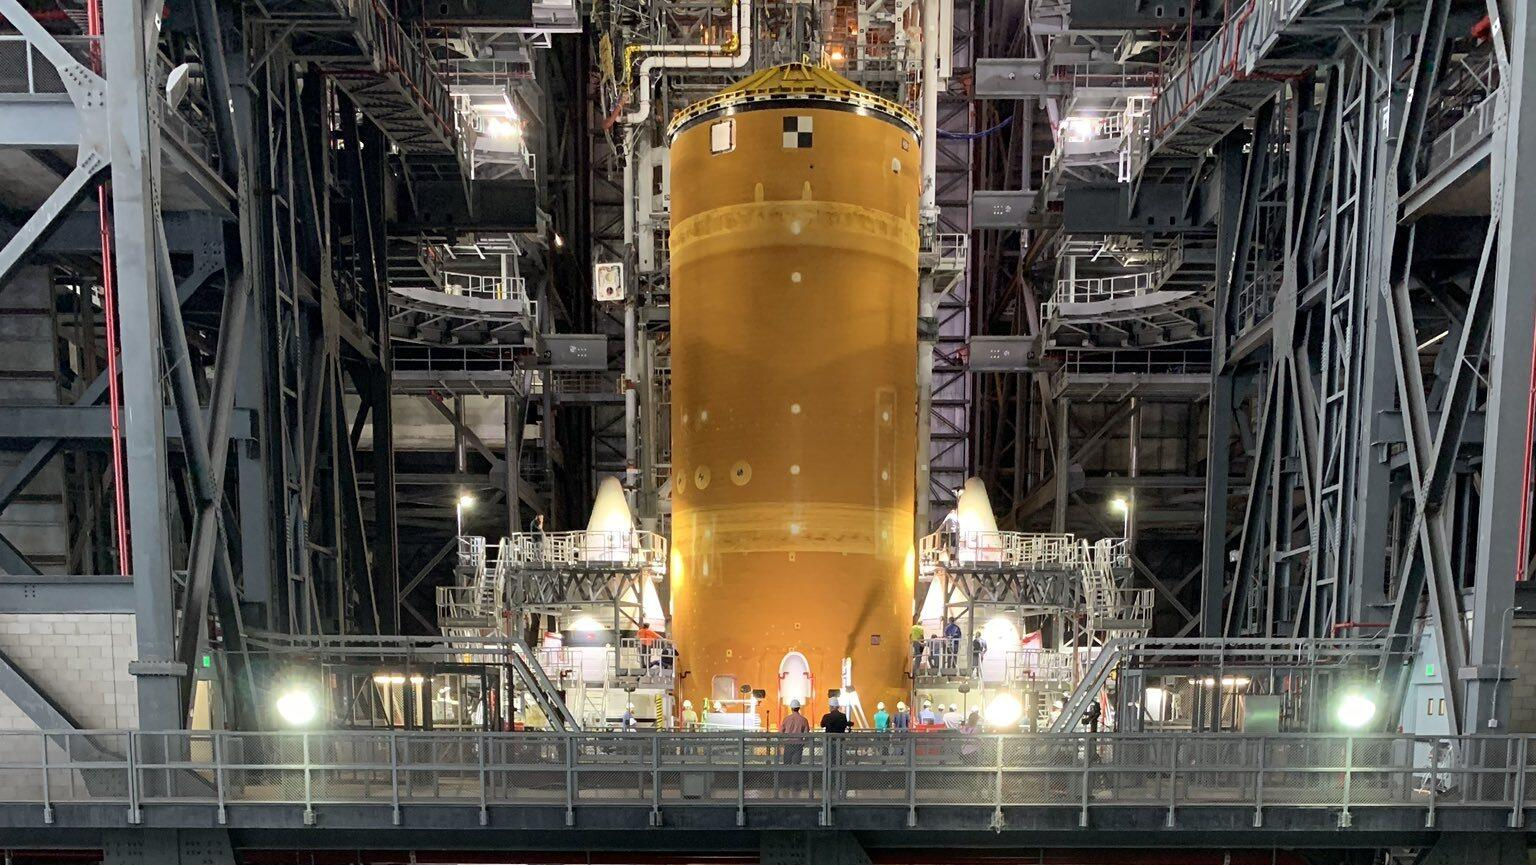 See NASA's bonkers-big moon rocket standing up, boosters and all - CNET